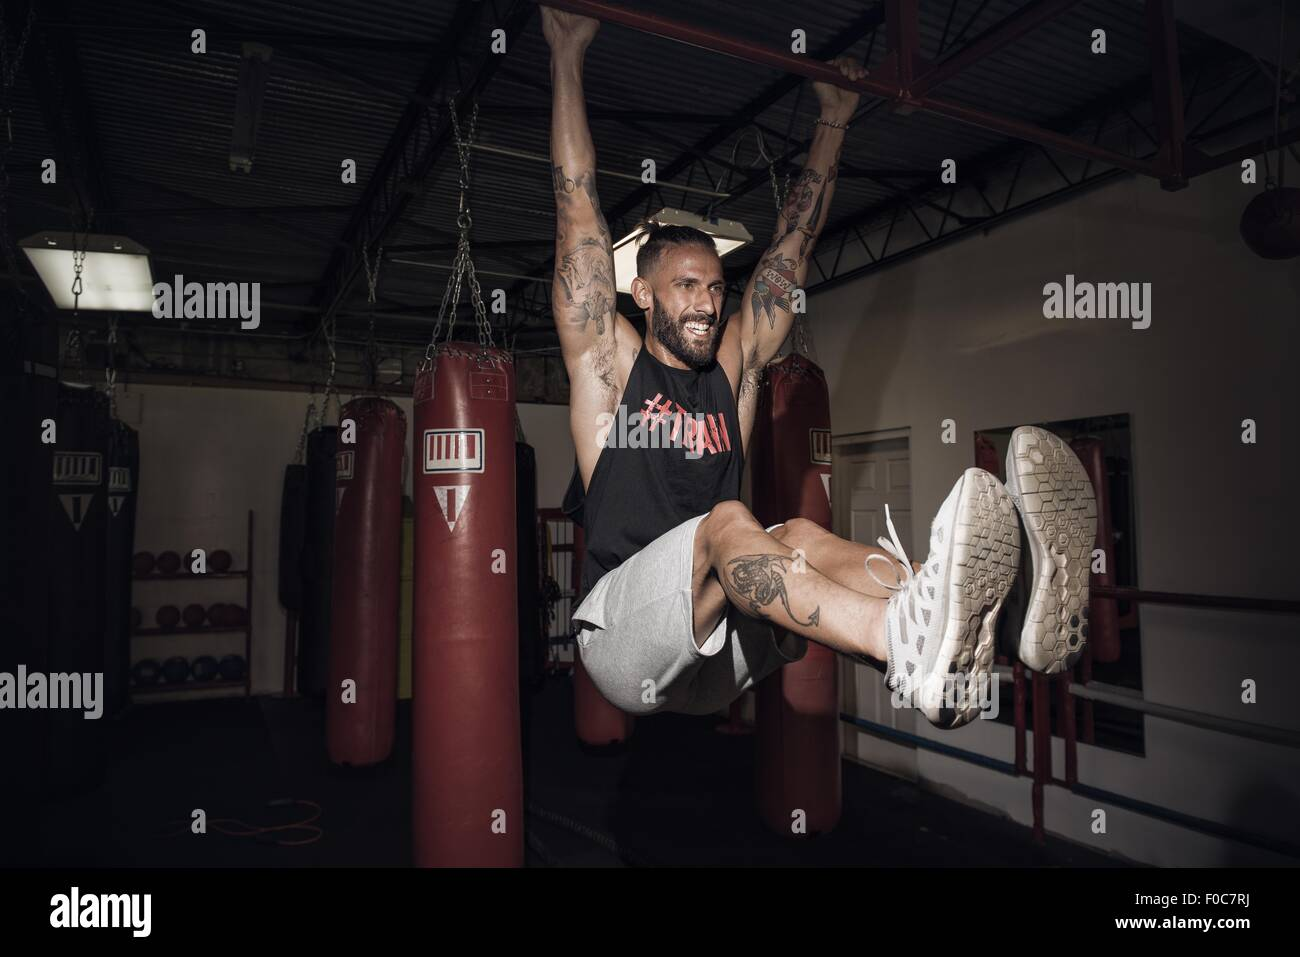 Male boxer training on bar with gritted teeth in gym - Stock Image